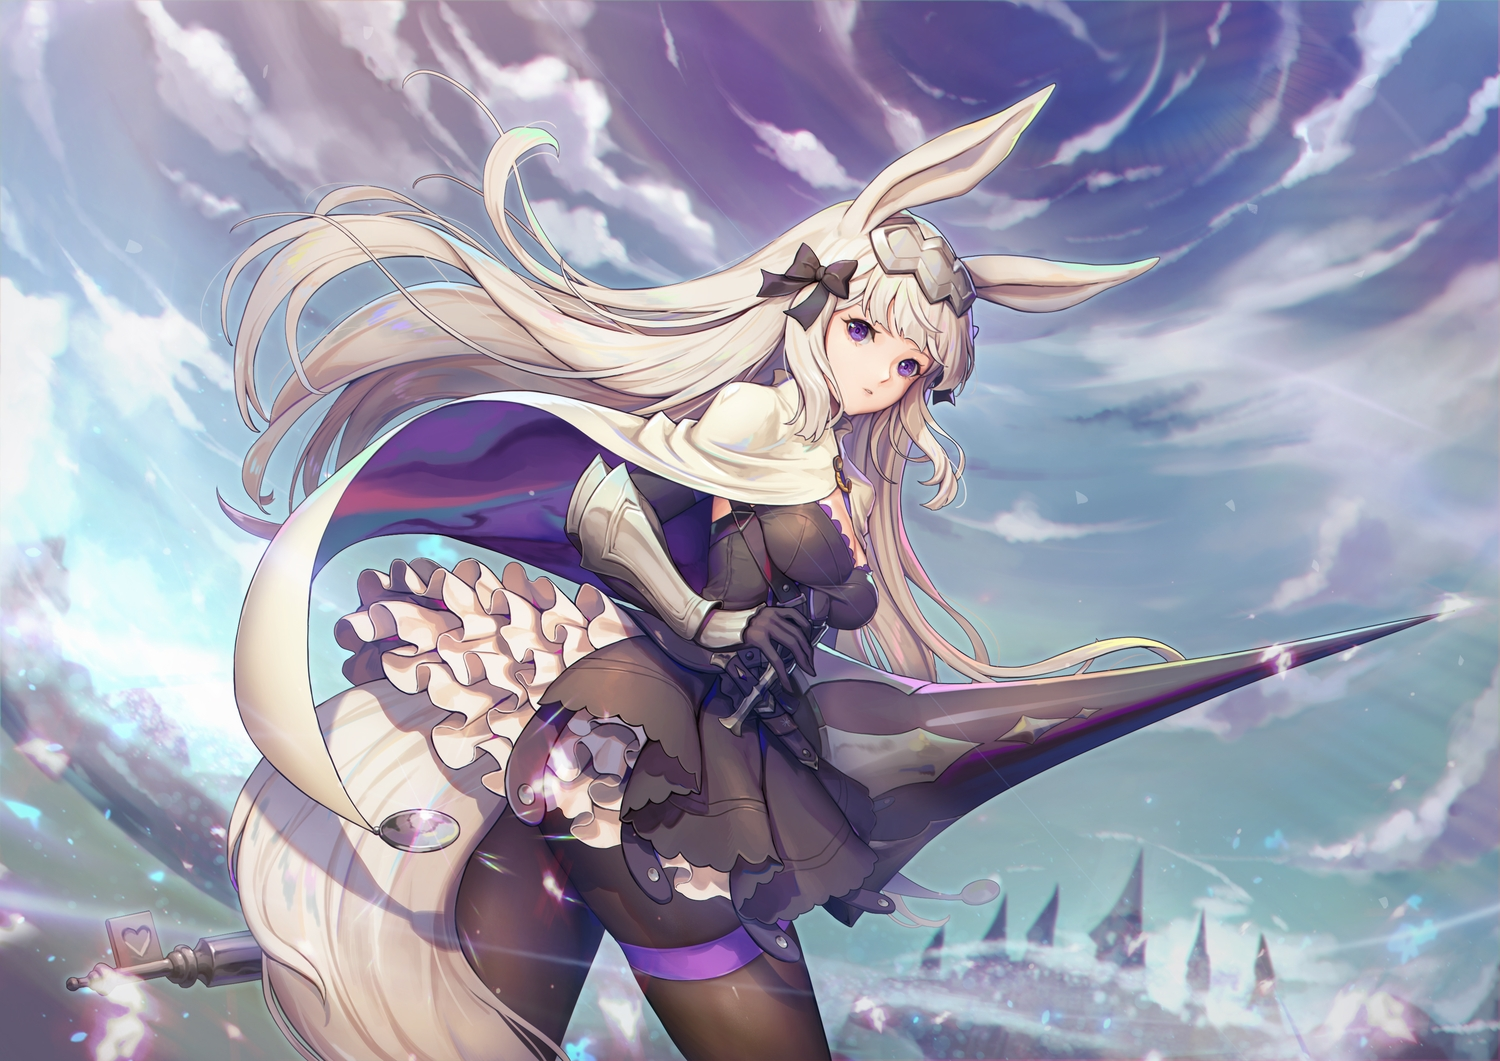 animal_ears bunny_ears clouds dress long_hair pantyhose purple_eyes red:_pride_of_eden sky spear tail ursula_(red:_pride_of_eden) weapon white_hair y.i._(lave2217)